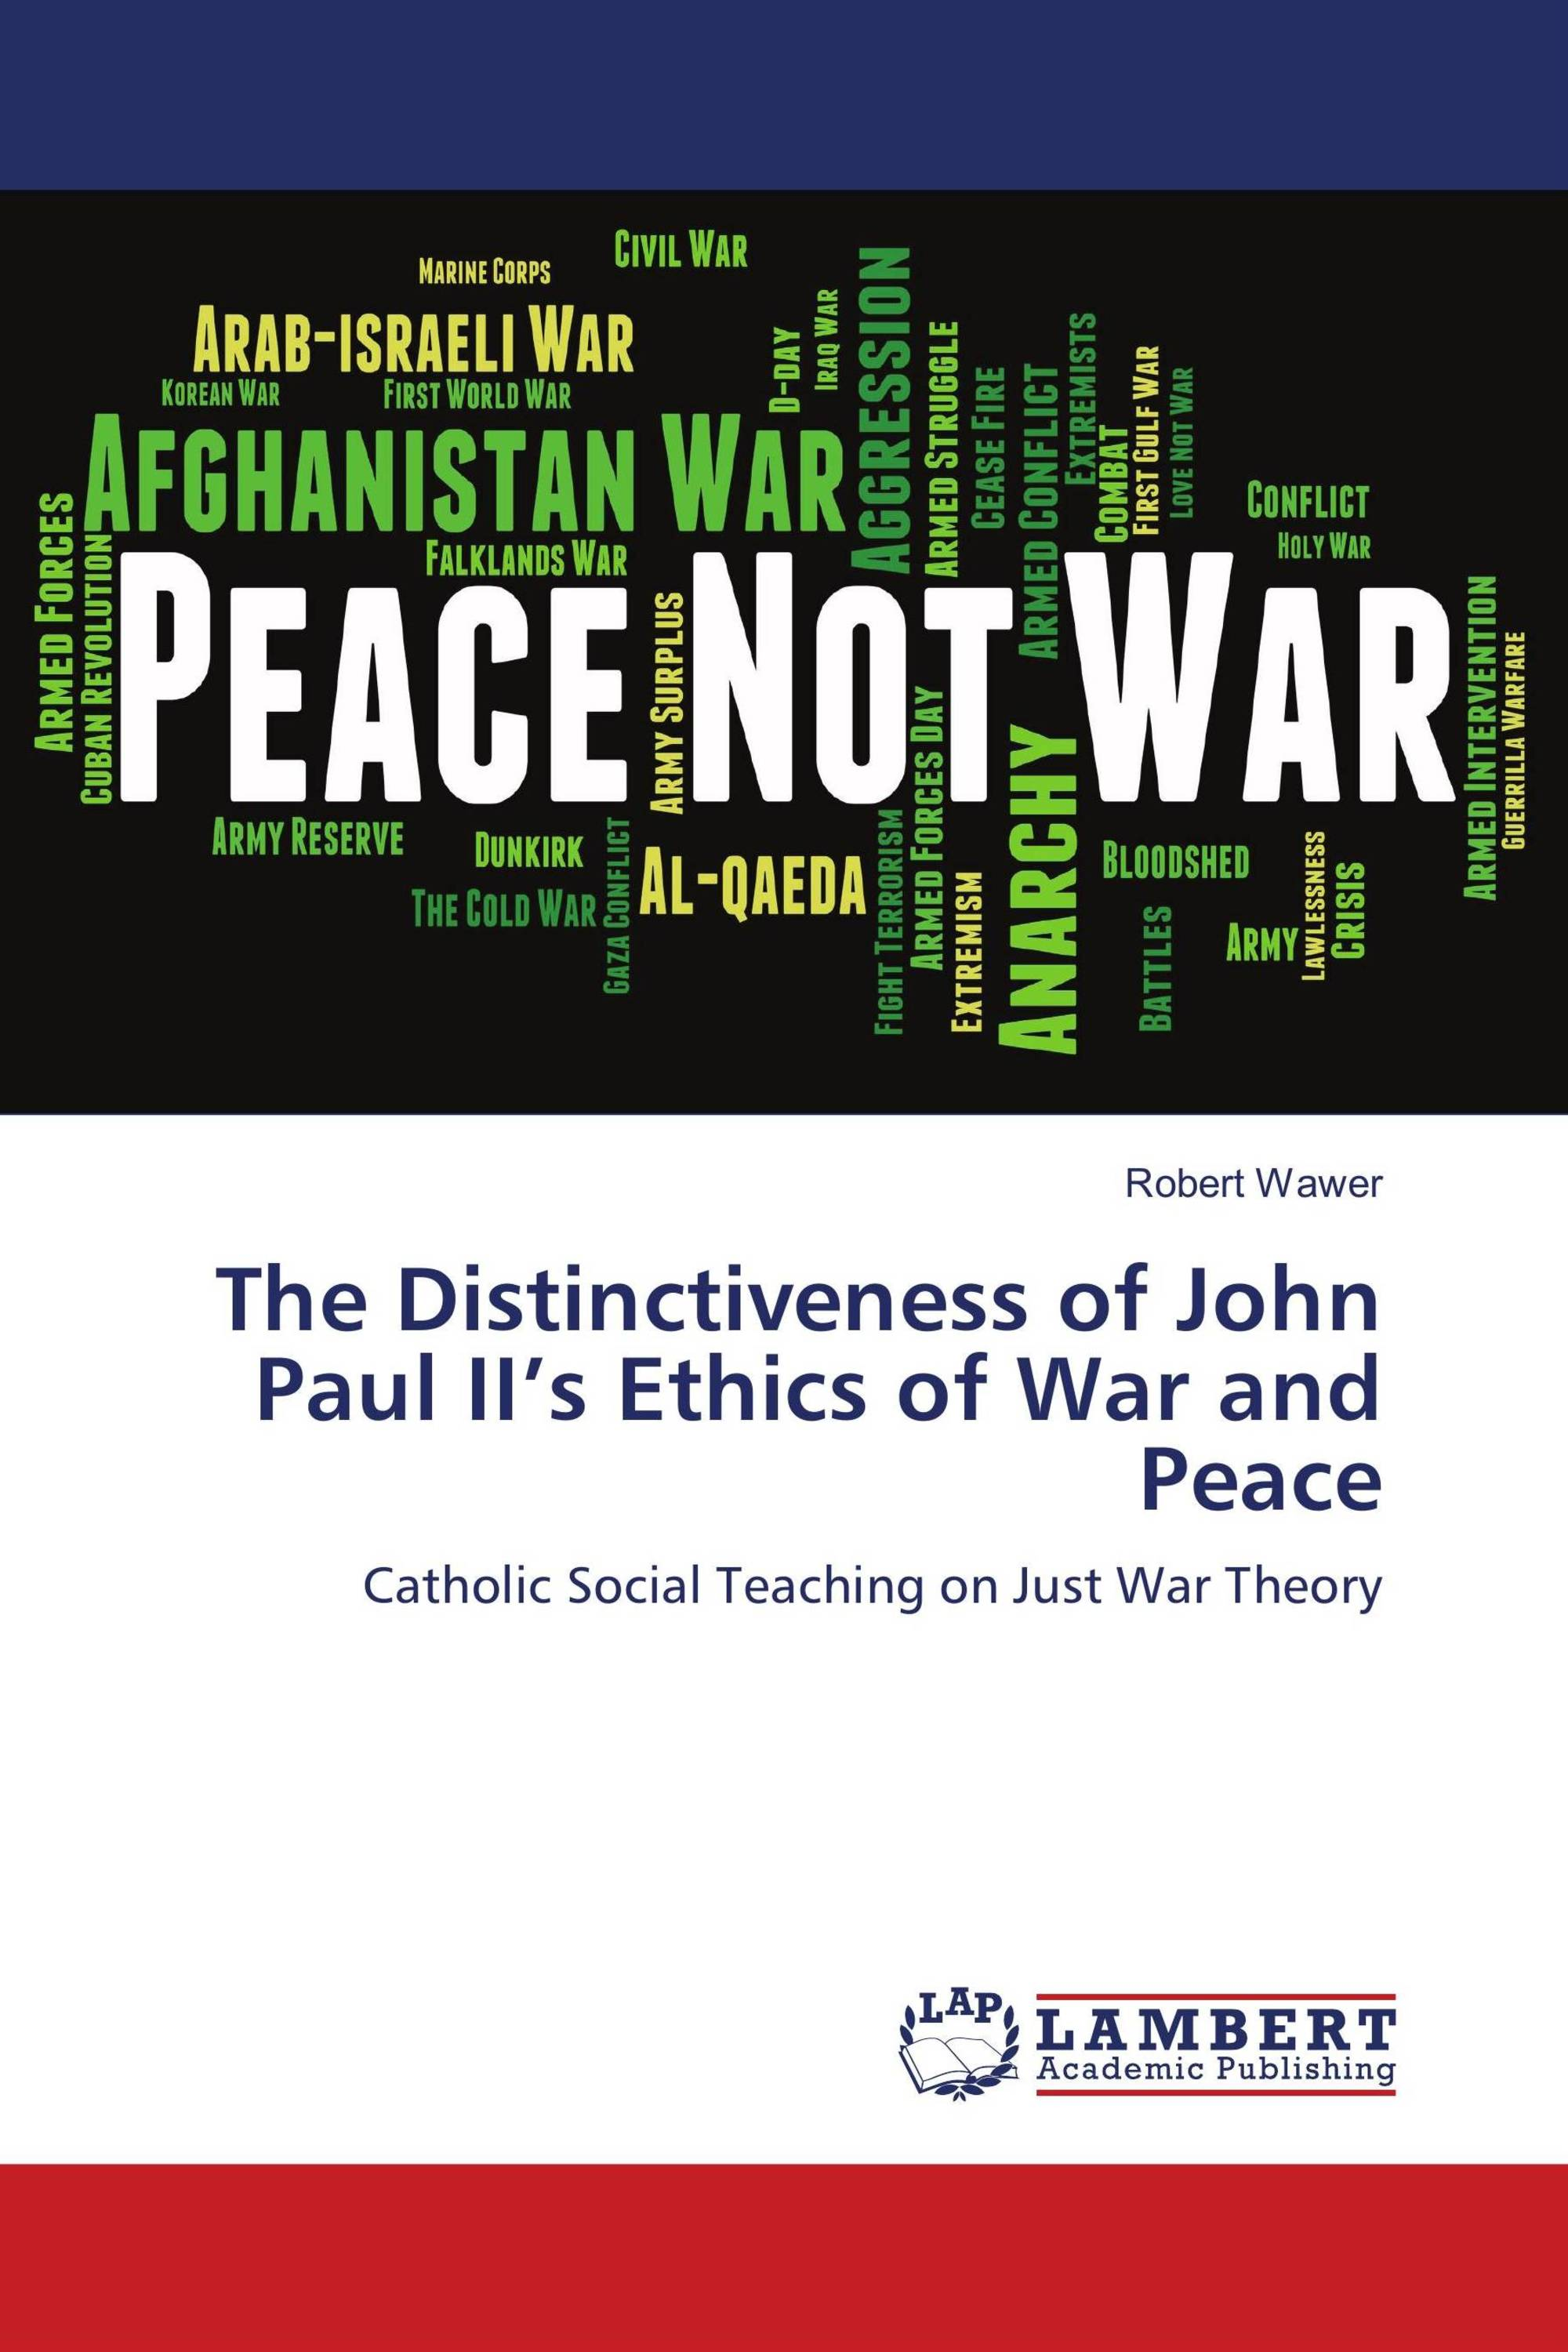 The Distinctiveness of John Paul II's Ethics of War and Peace